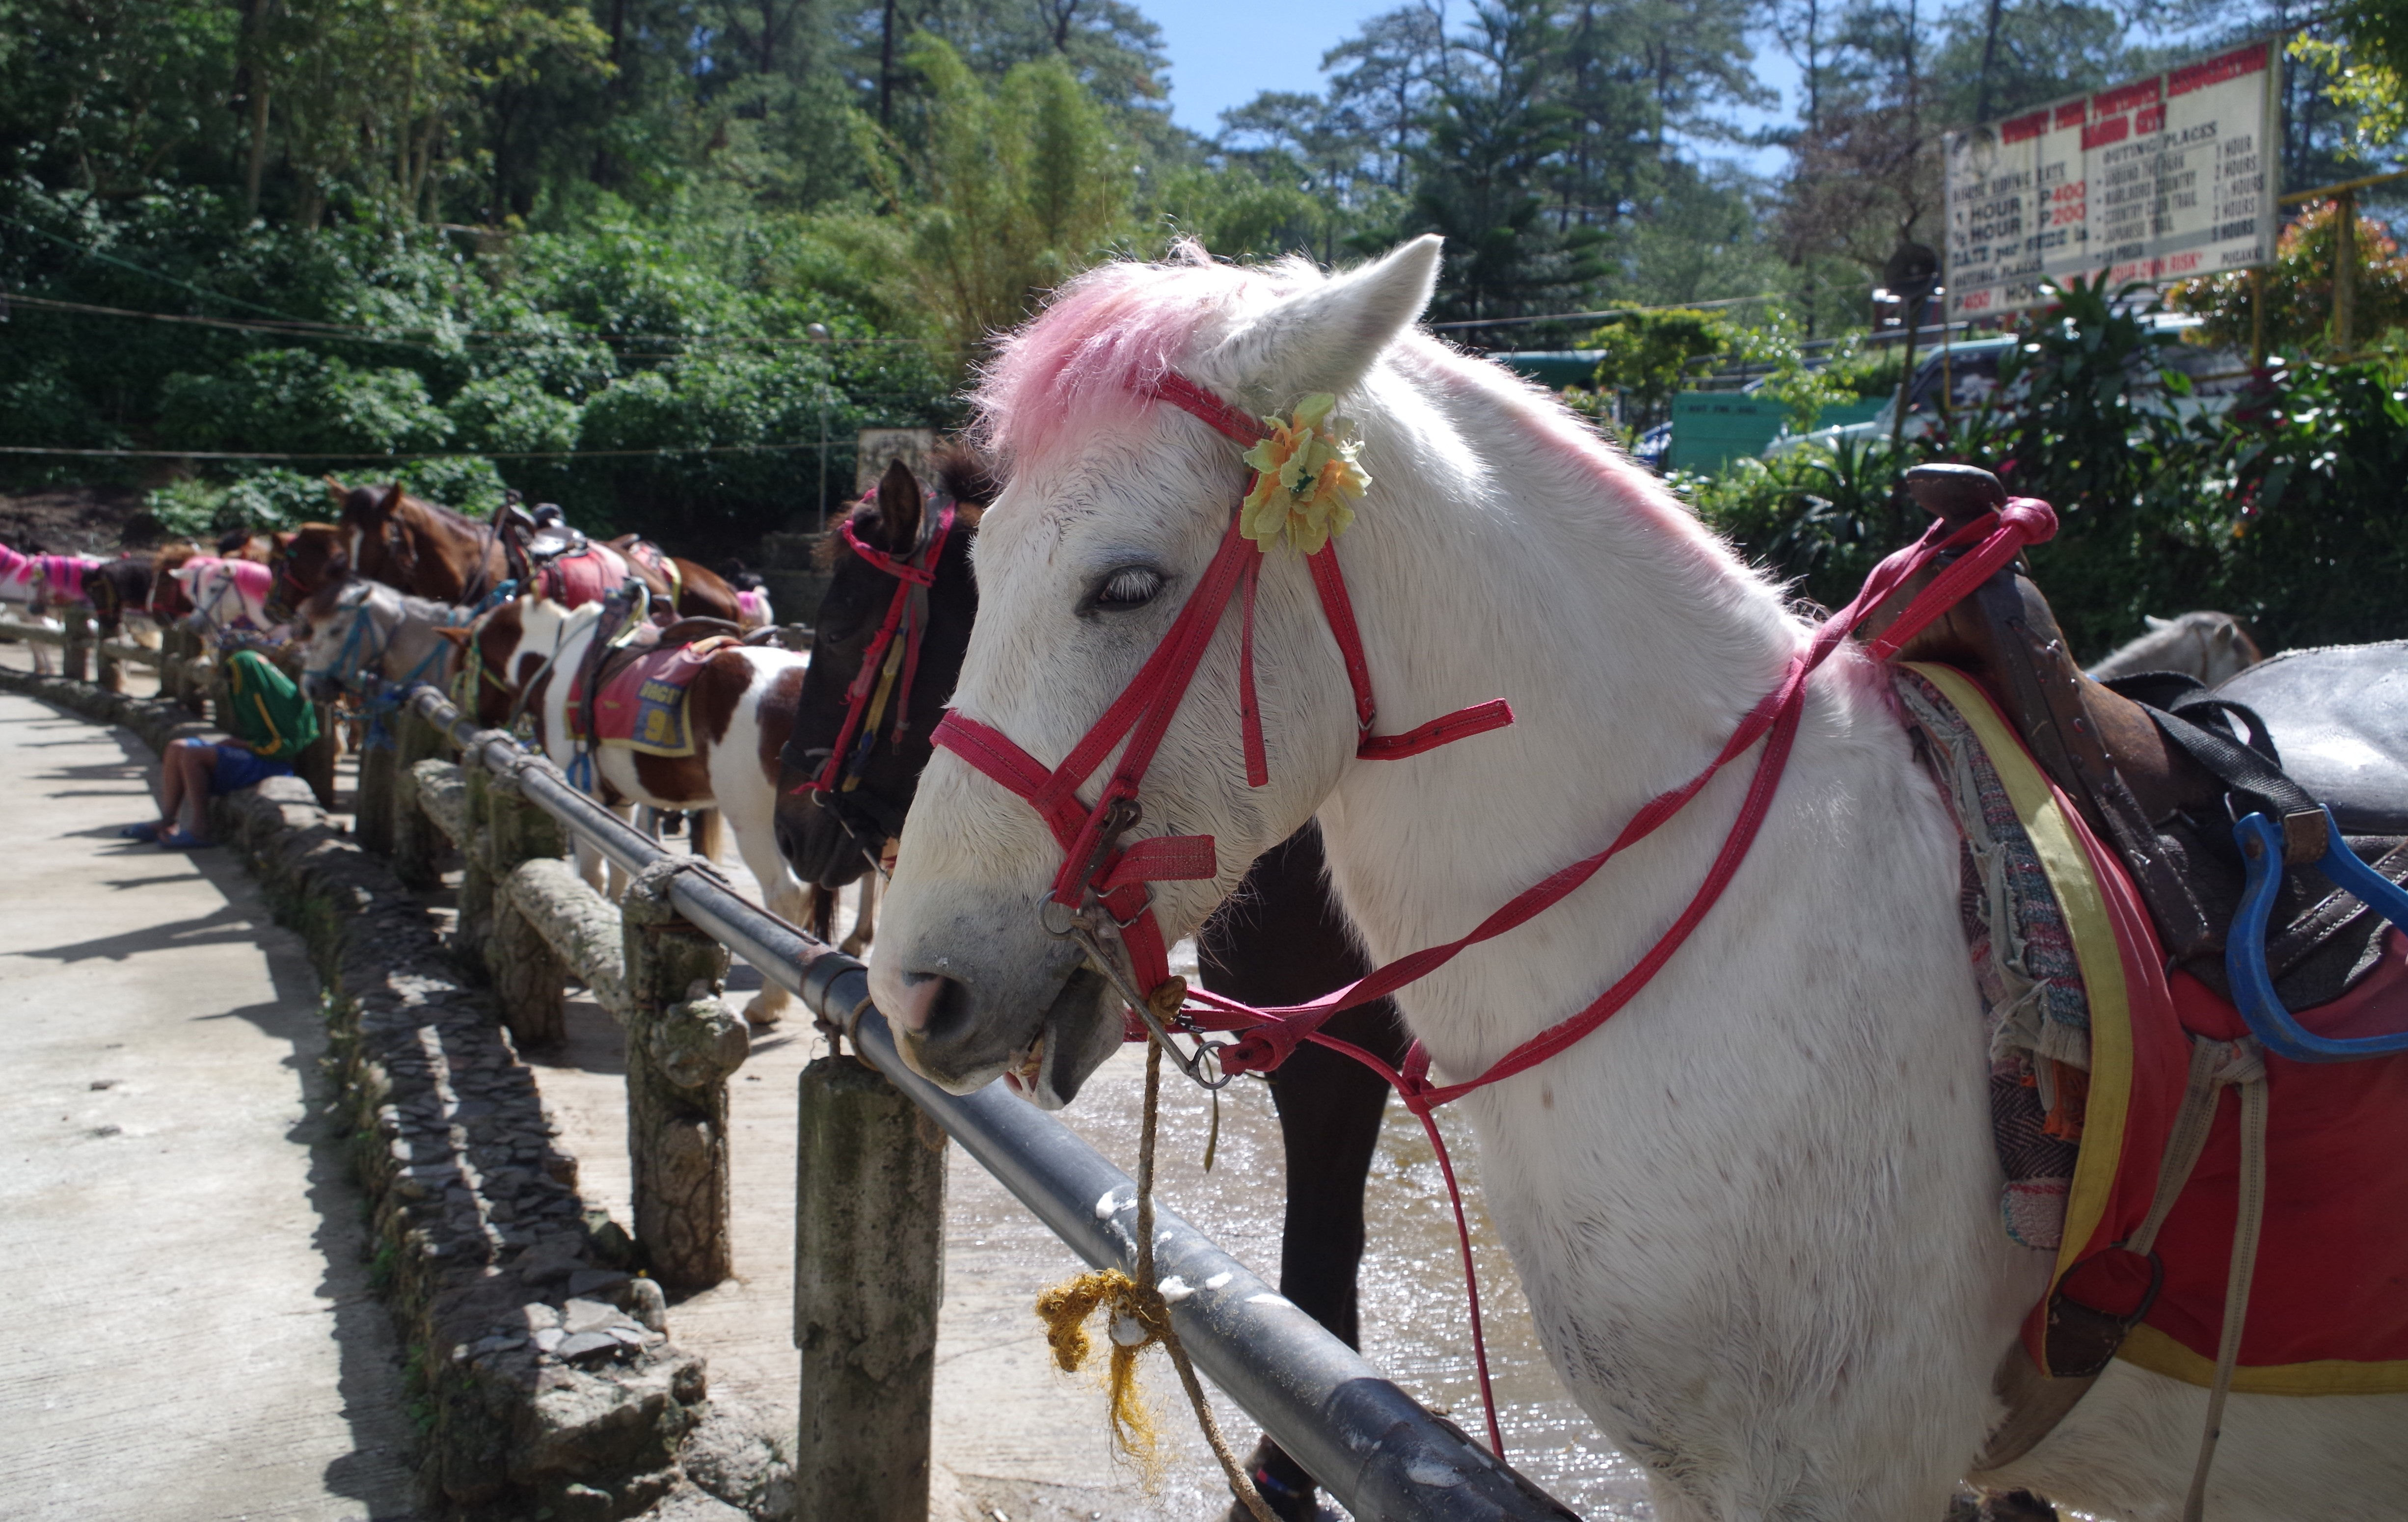 Horse for hire at the Wright Park,Camp John Hay front entrance, part of Cultural & Heritage Tour